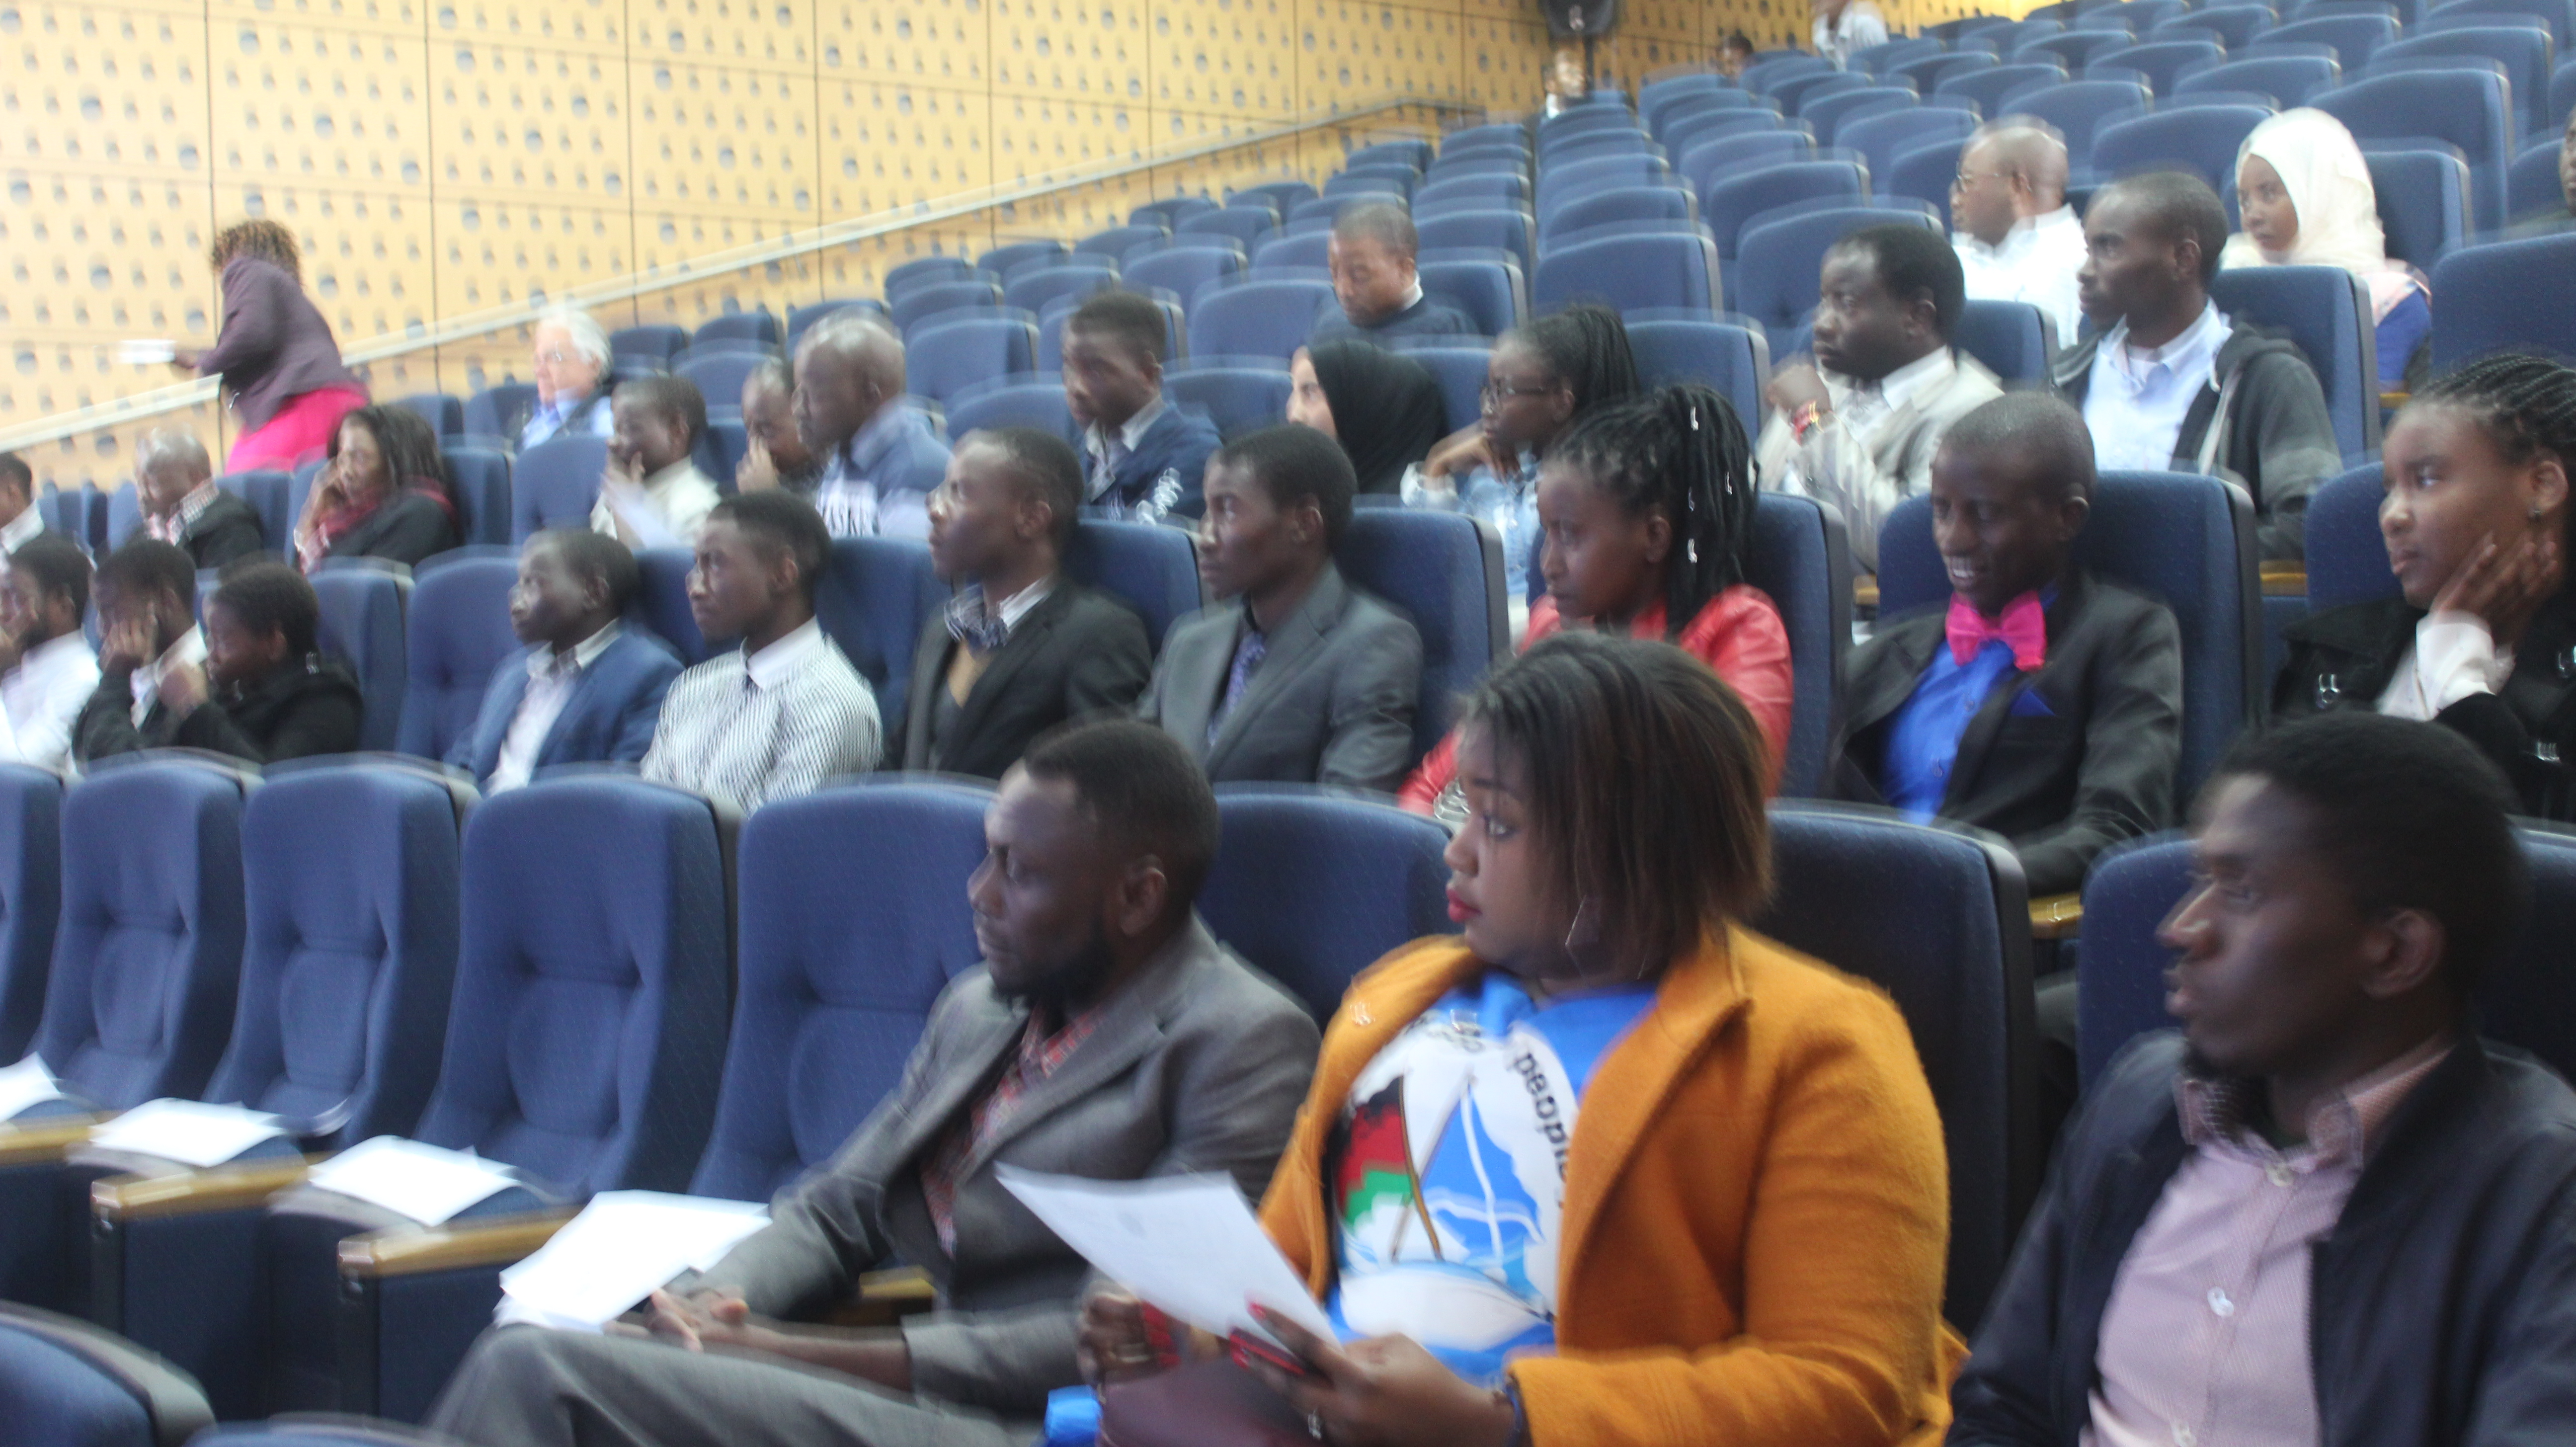 a section of the students in attendance at the launch